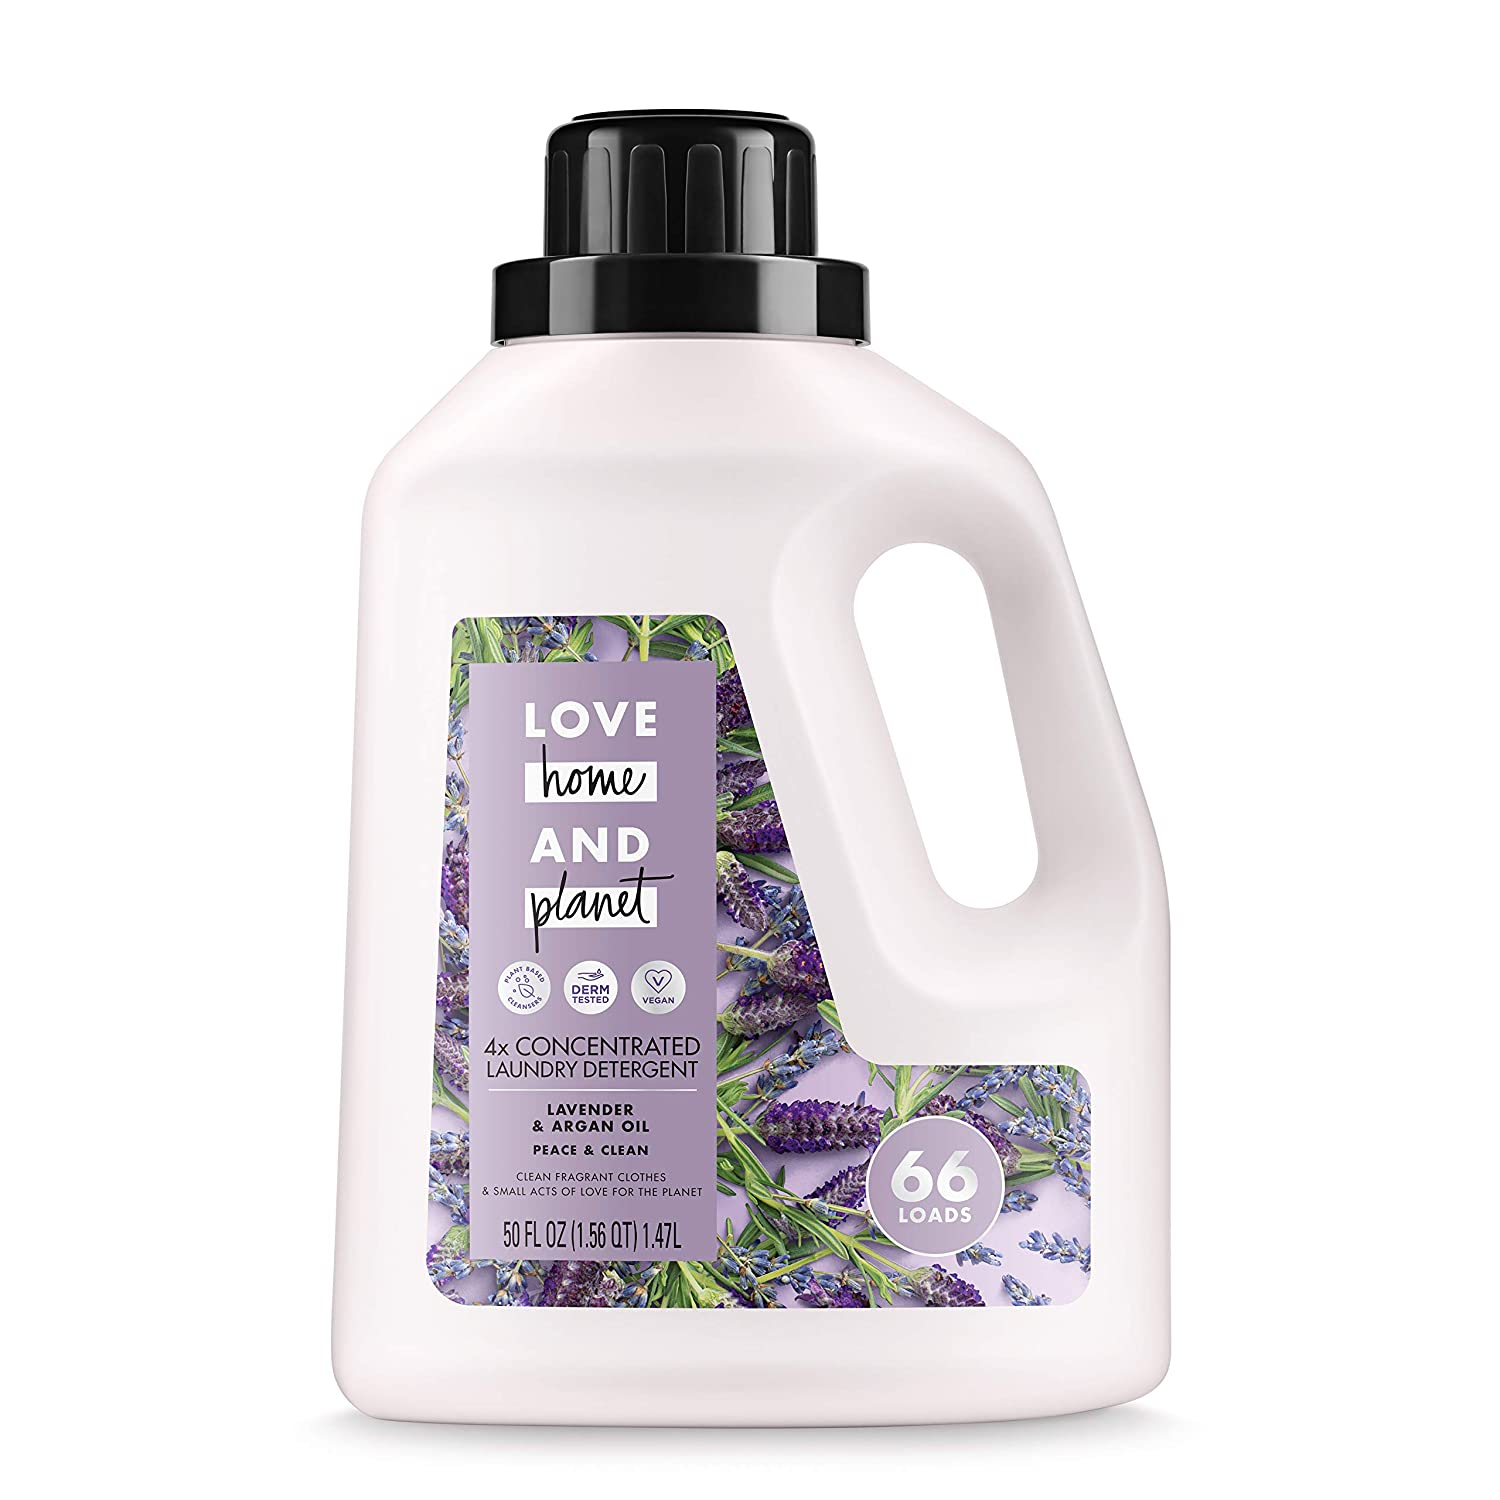 Home and Planet Laundry Detergent, Lavender & Argan Oil, 50 oz Home And Planet on home science, home of superman krypton, home tree, home school, home color, home ice, home truck, home of superman metropolis illinois, home flower, home community, home tower, home food, home fire, home satellite,